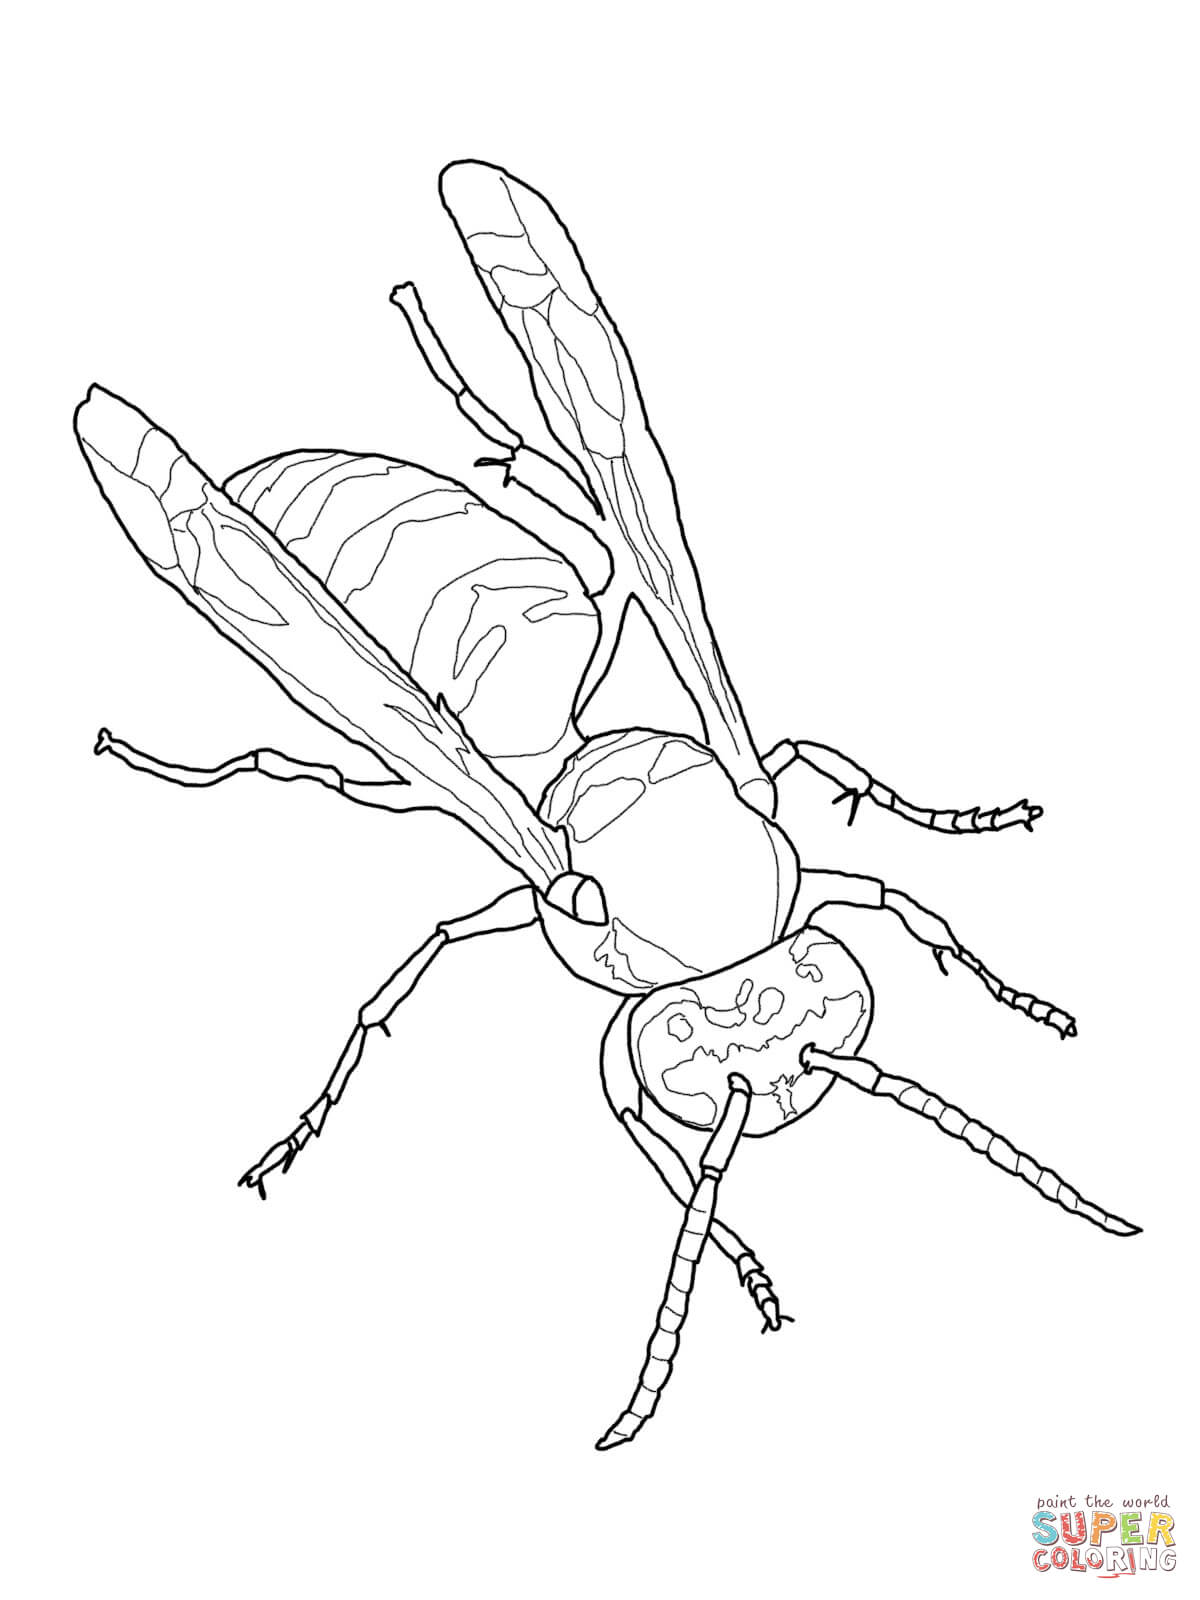 Eastern Yellow Jacket Coloring Page